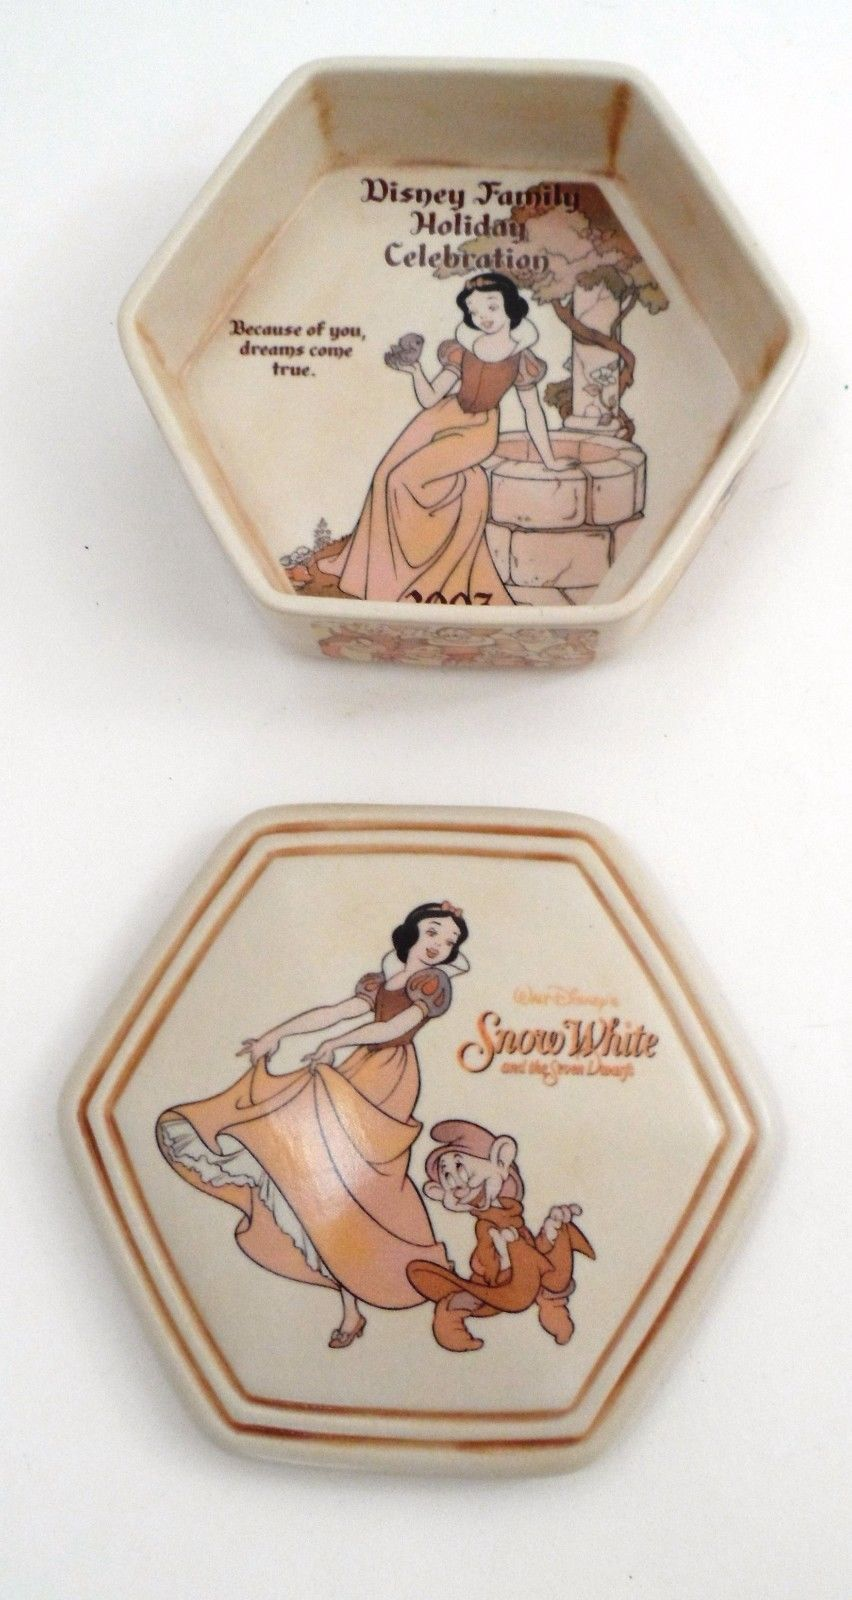 2007 Walt Disney 70th Family Holiday Celebration Princess Snow White Trinket Box